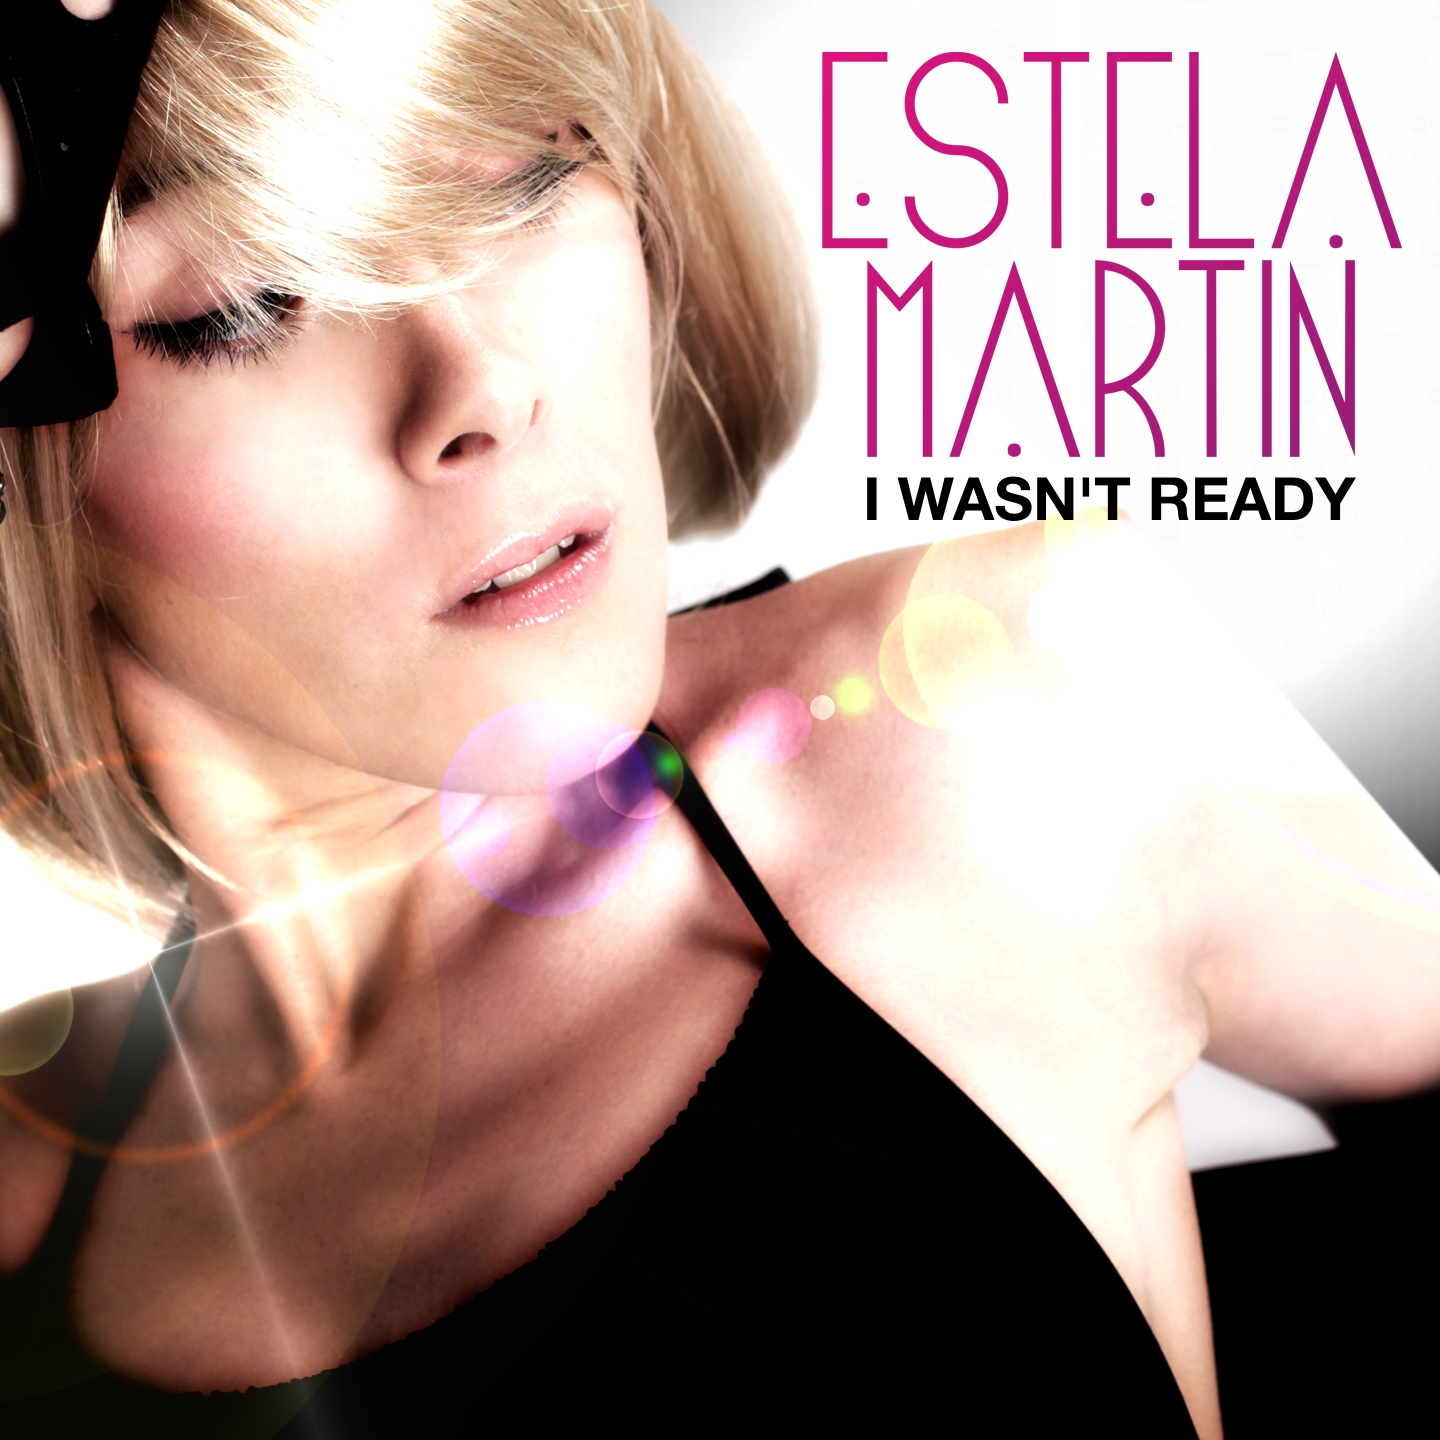 I Wasn't Ready by Estela Martin